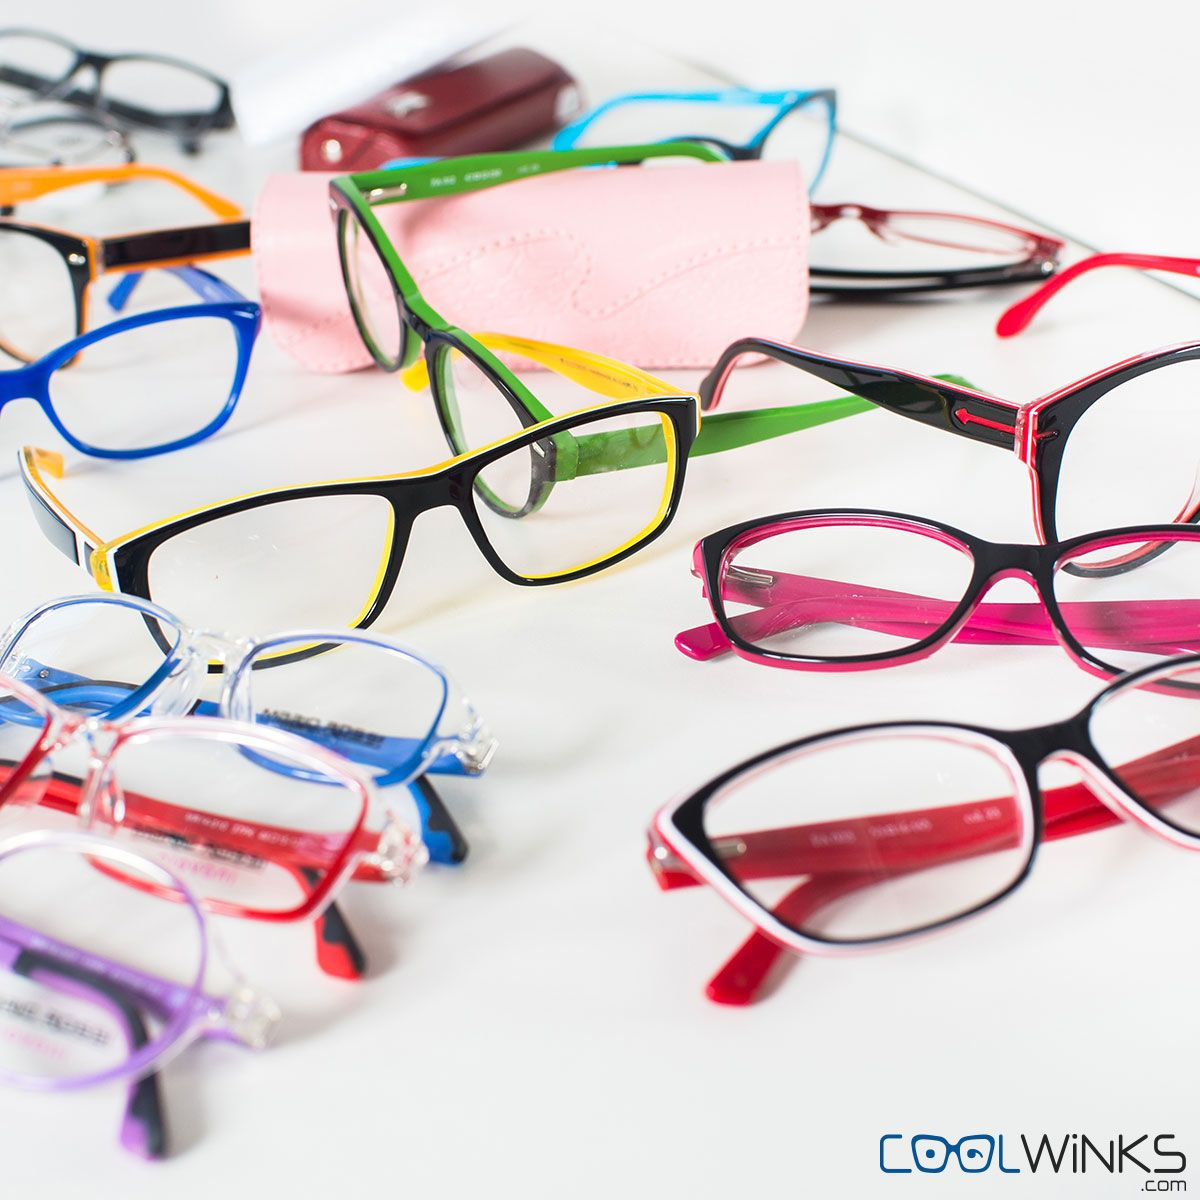 219243e1a1 It is time to get Free Eyeglass Frames! Branded